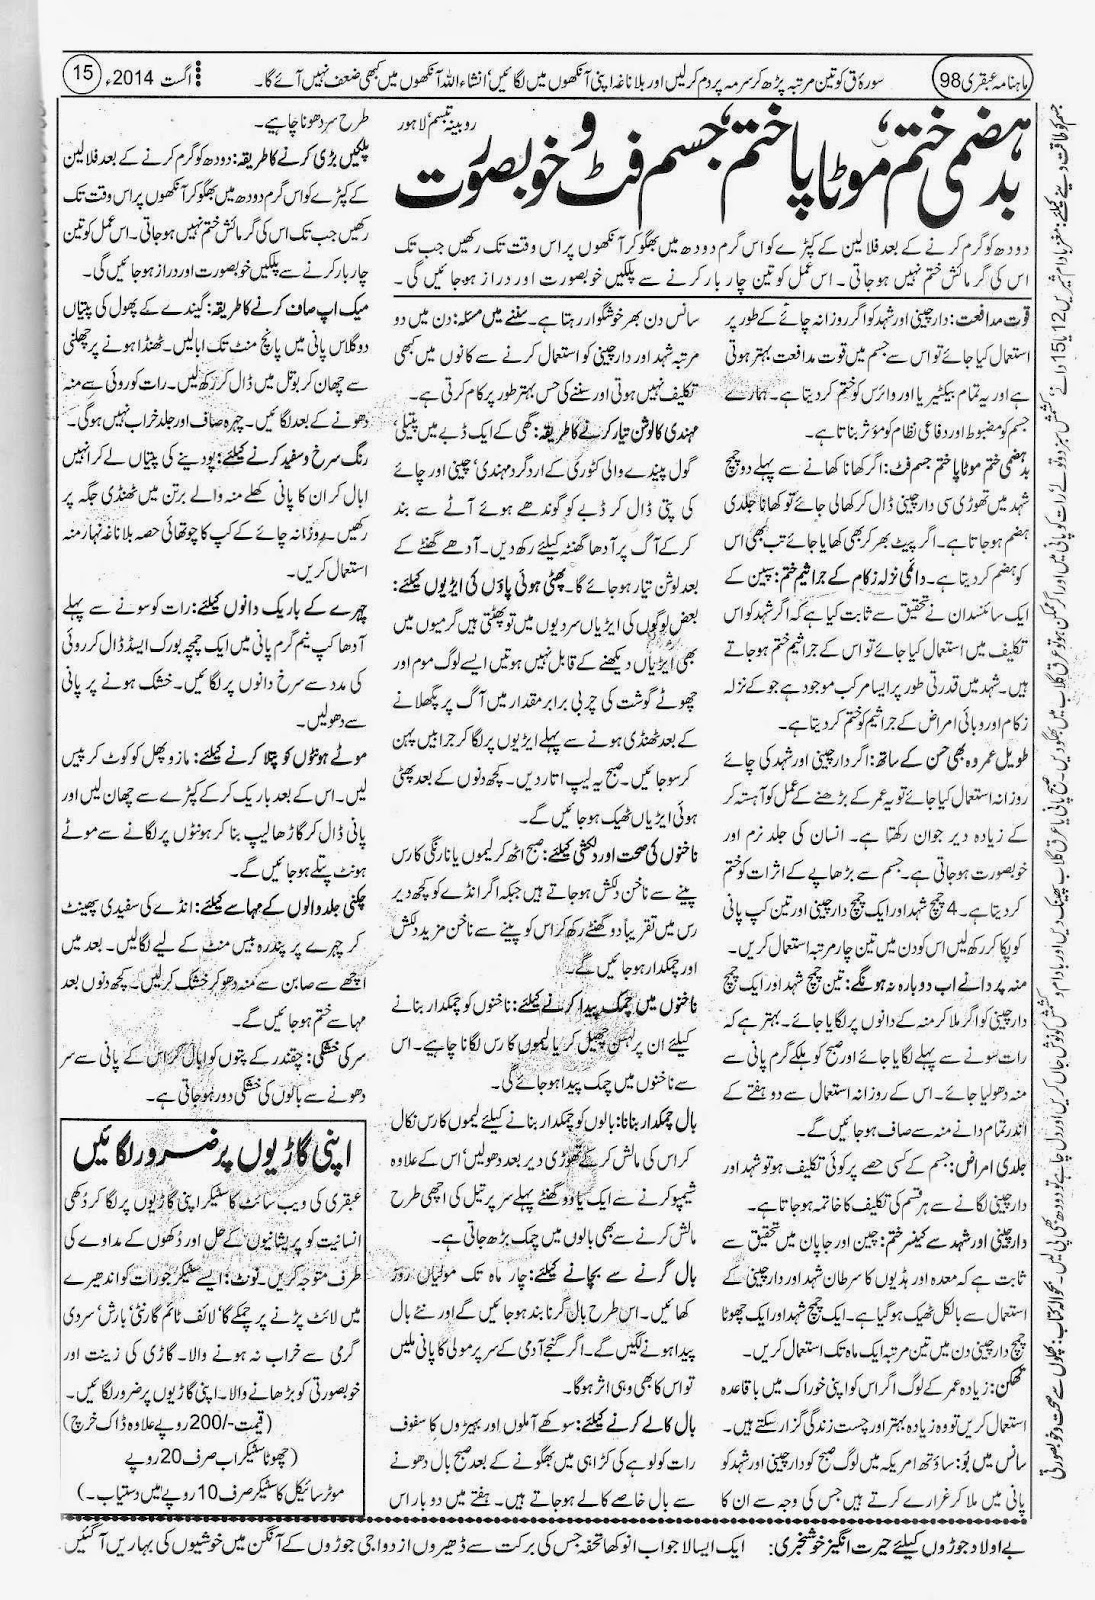 Ubqari August 2014 Page 15